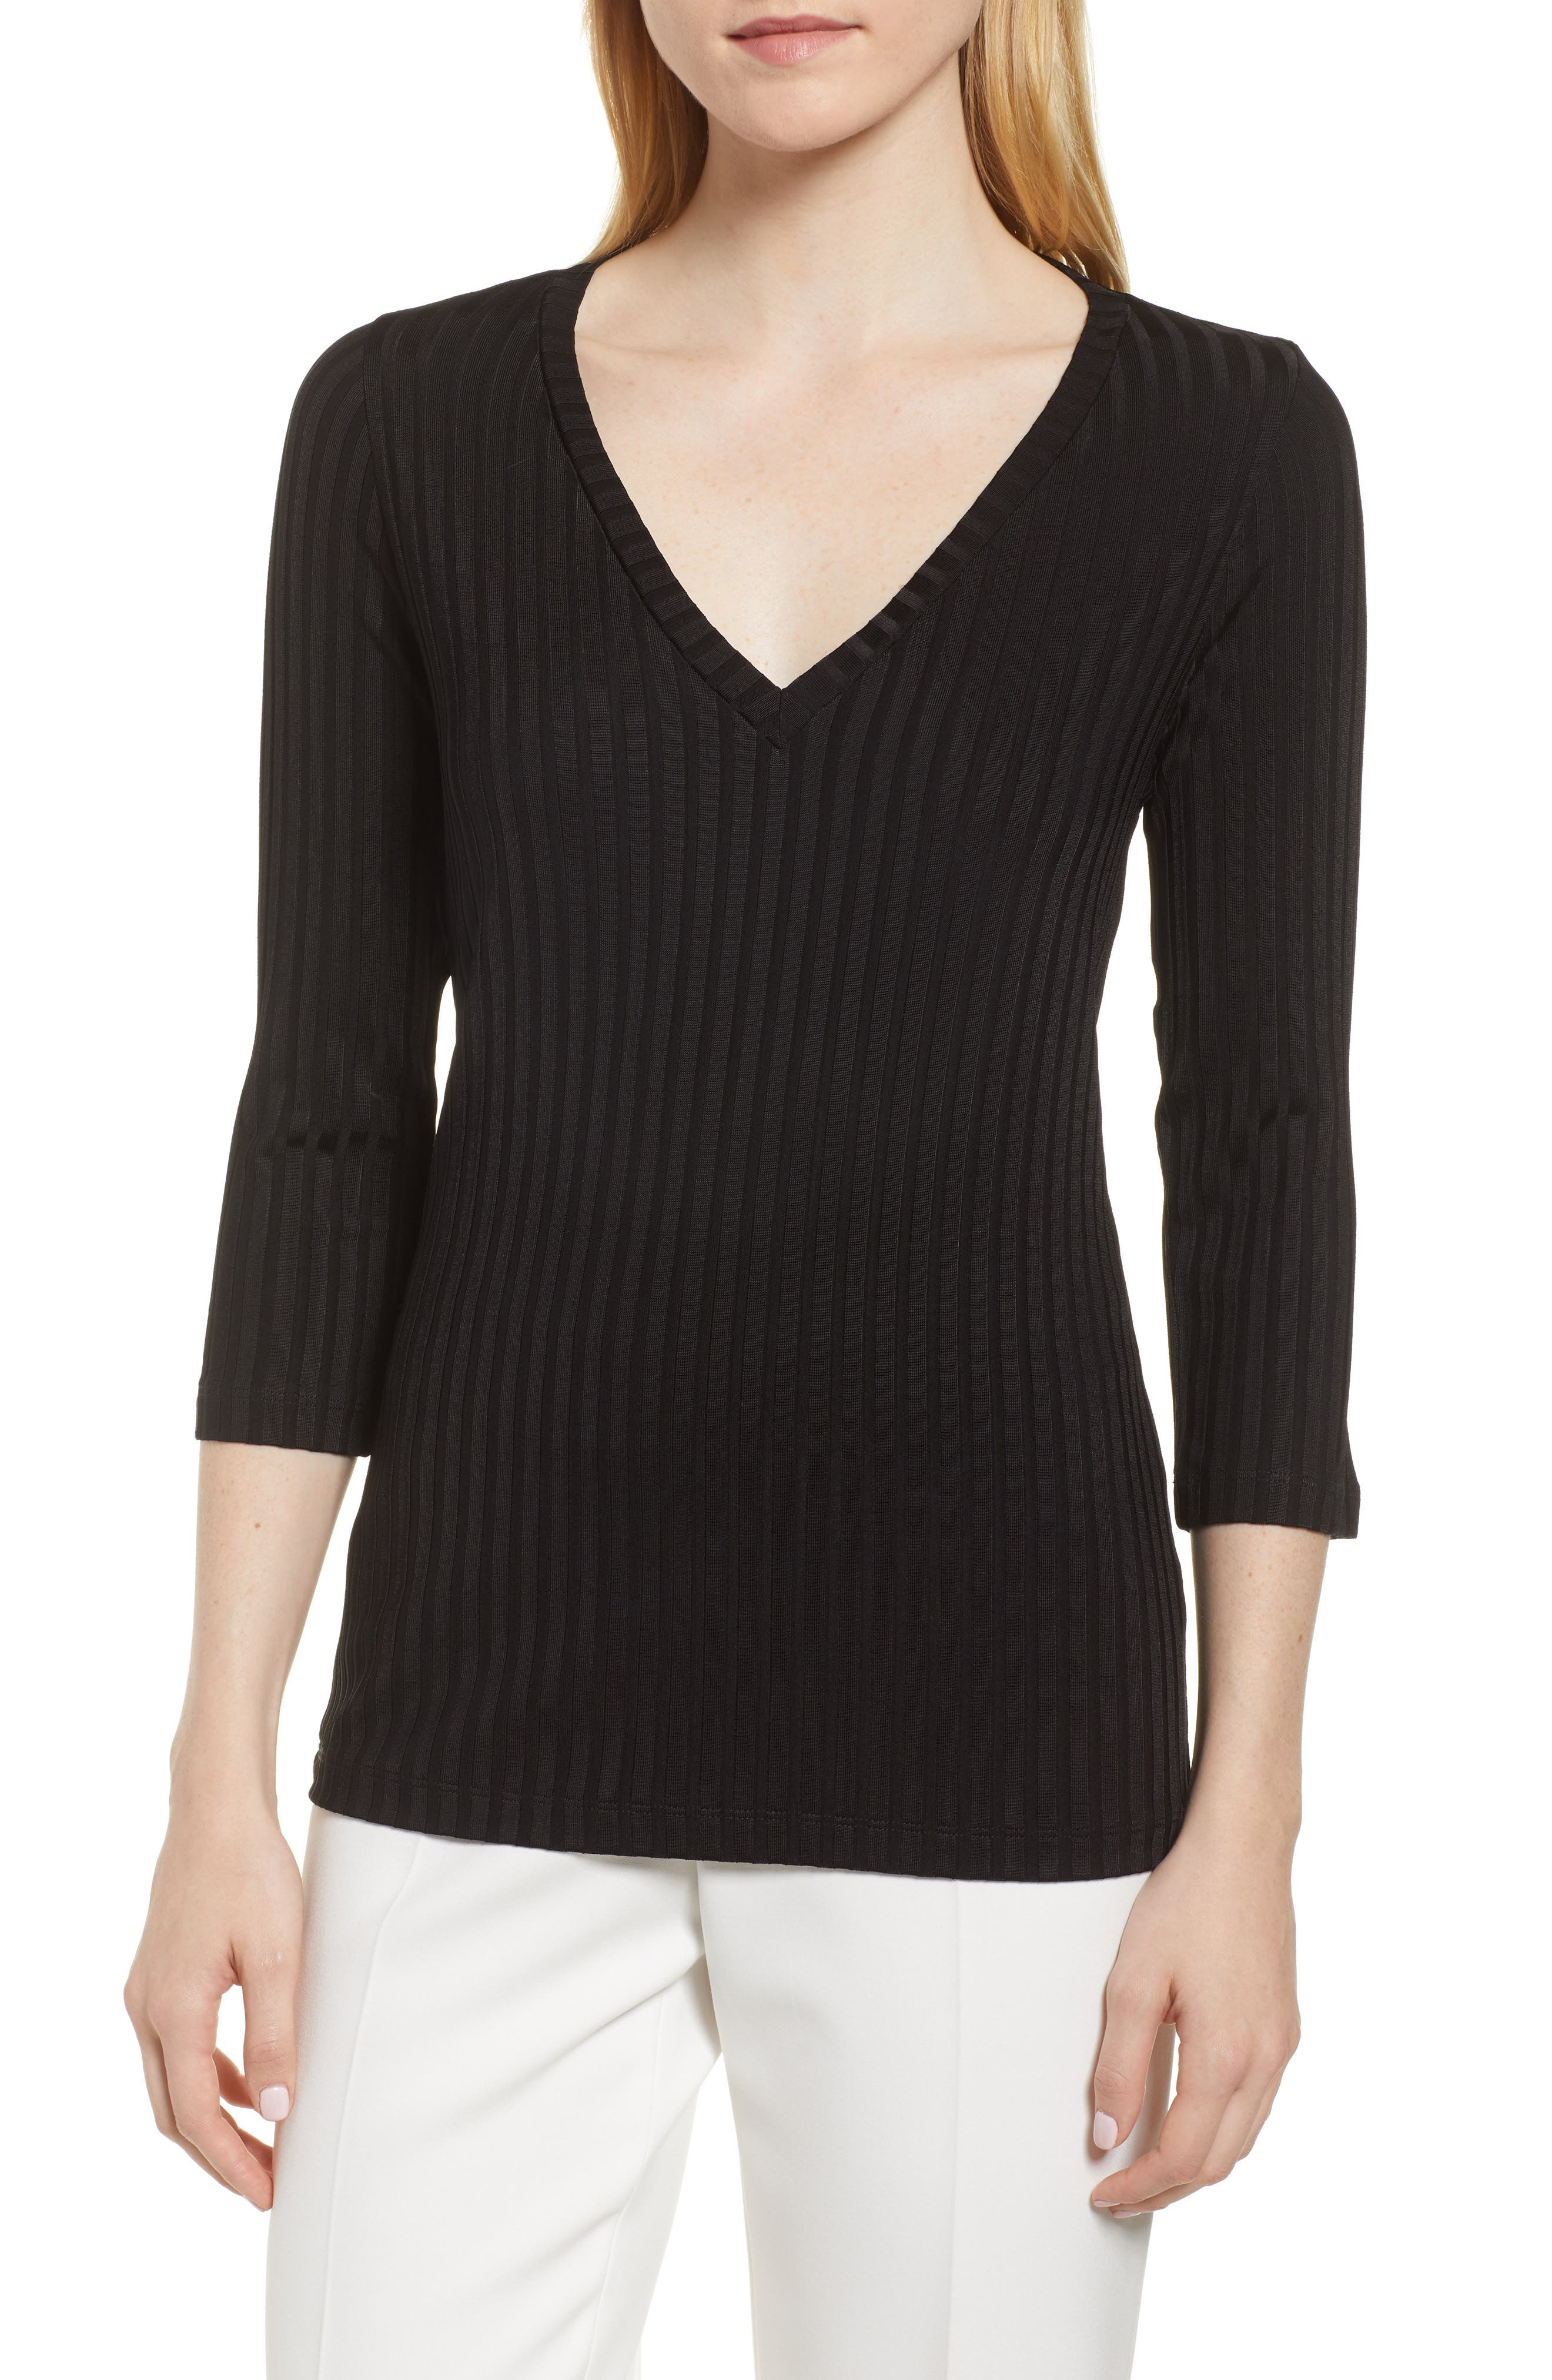 Etrica Ribbed Sweater,                             Main thumbnail 1, color,                             001